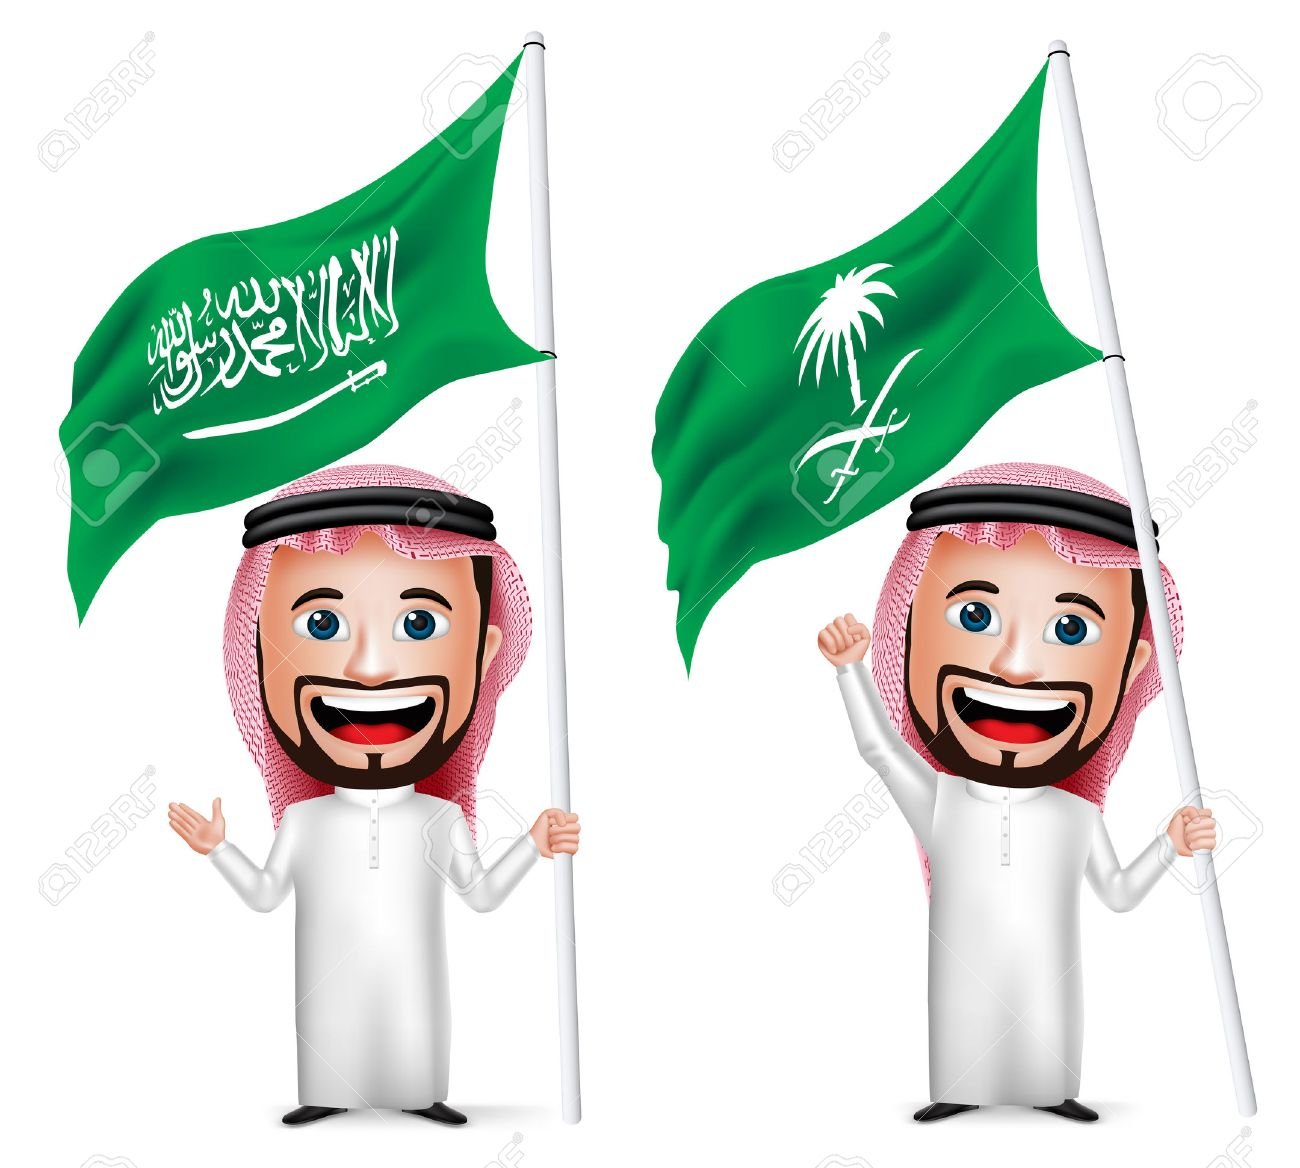 3D Realistic Saudi Arab Man Cartoon Character Holding and Waving Saudi Arabia Flag for National Day Isolated in White. Vector Illustration. - 44288077